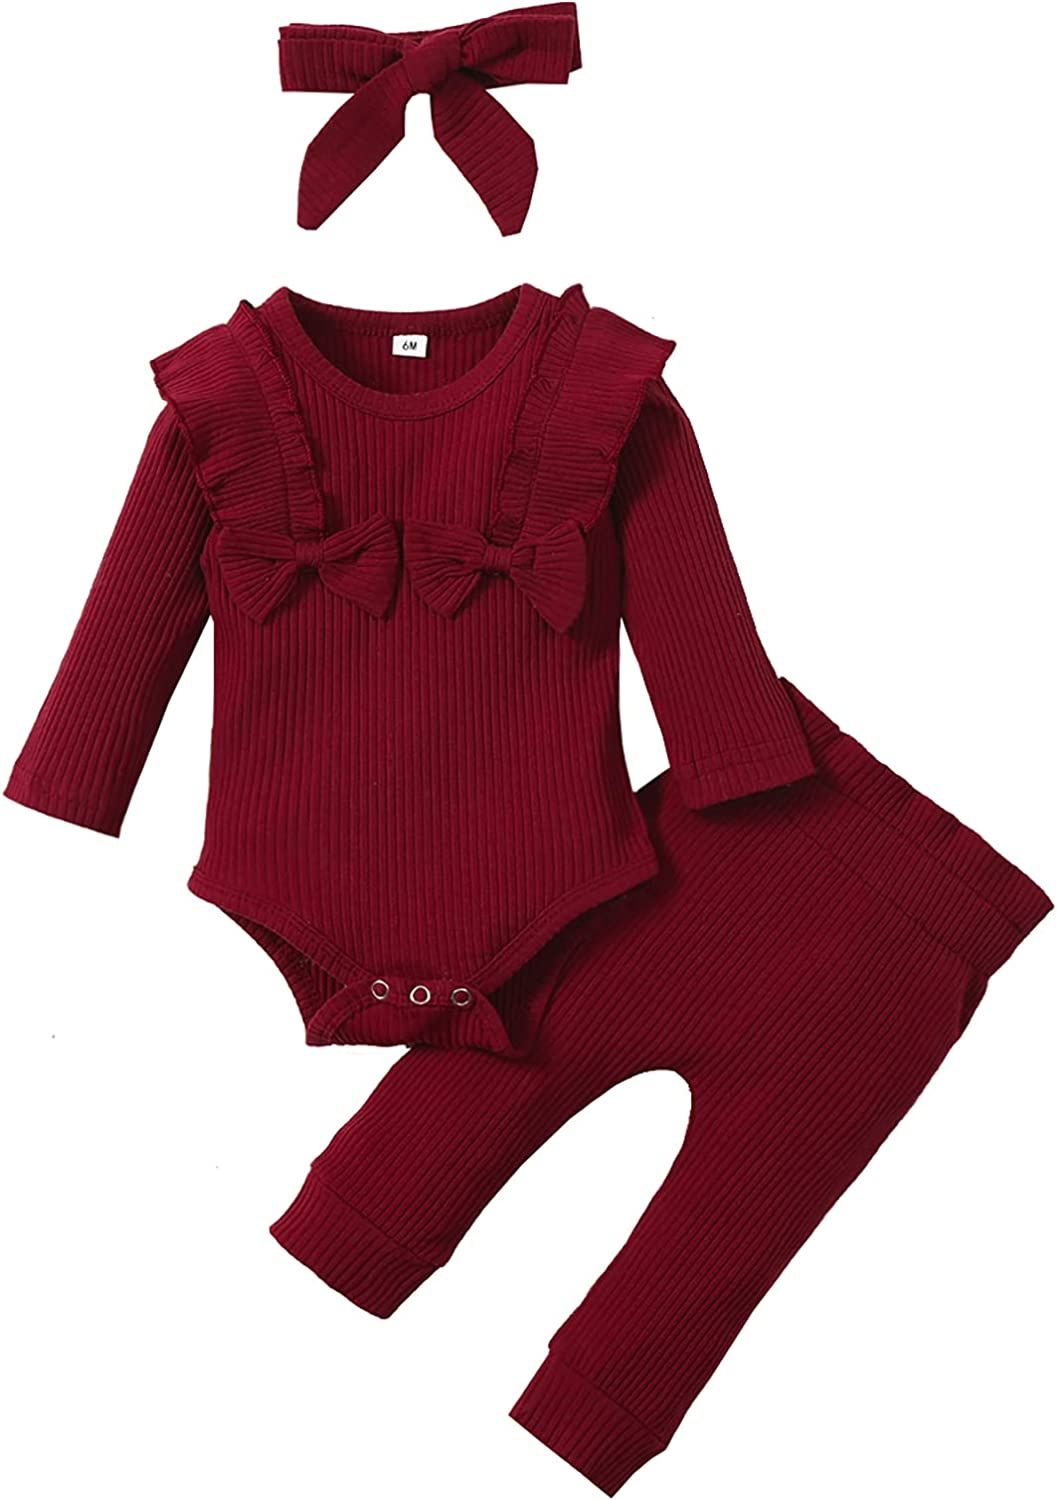 Newborn Infant Baby Girl Clothes Solid Knitted Ribbed Long Sleeve Romper Pants Headband Fall Winter Outfits Set